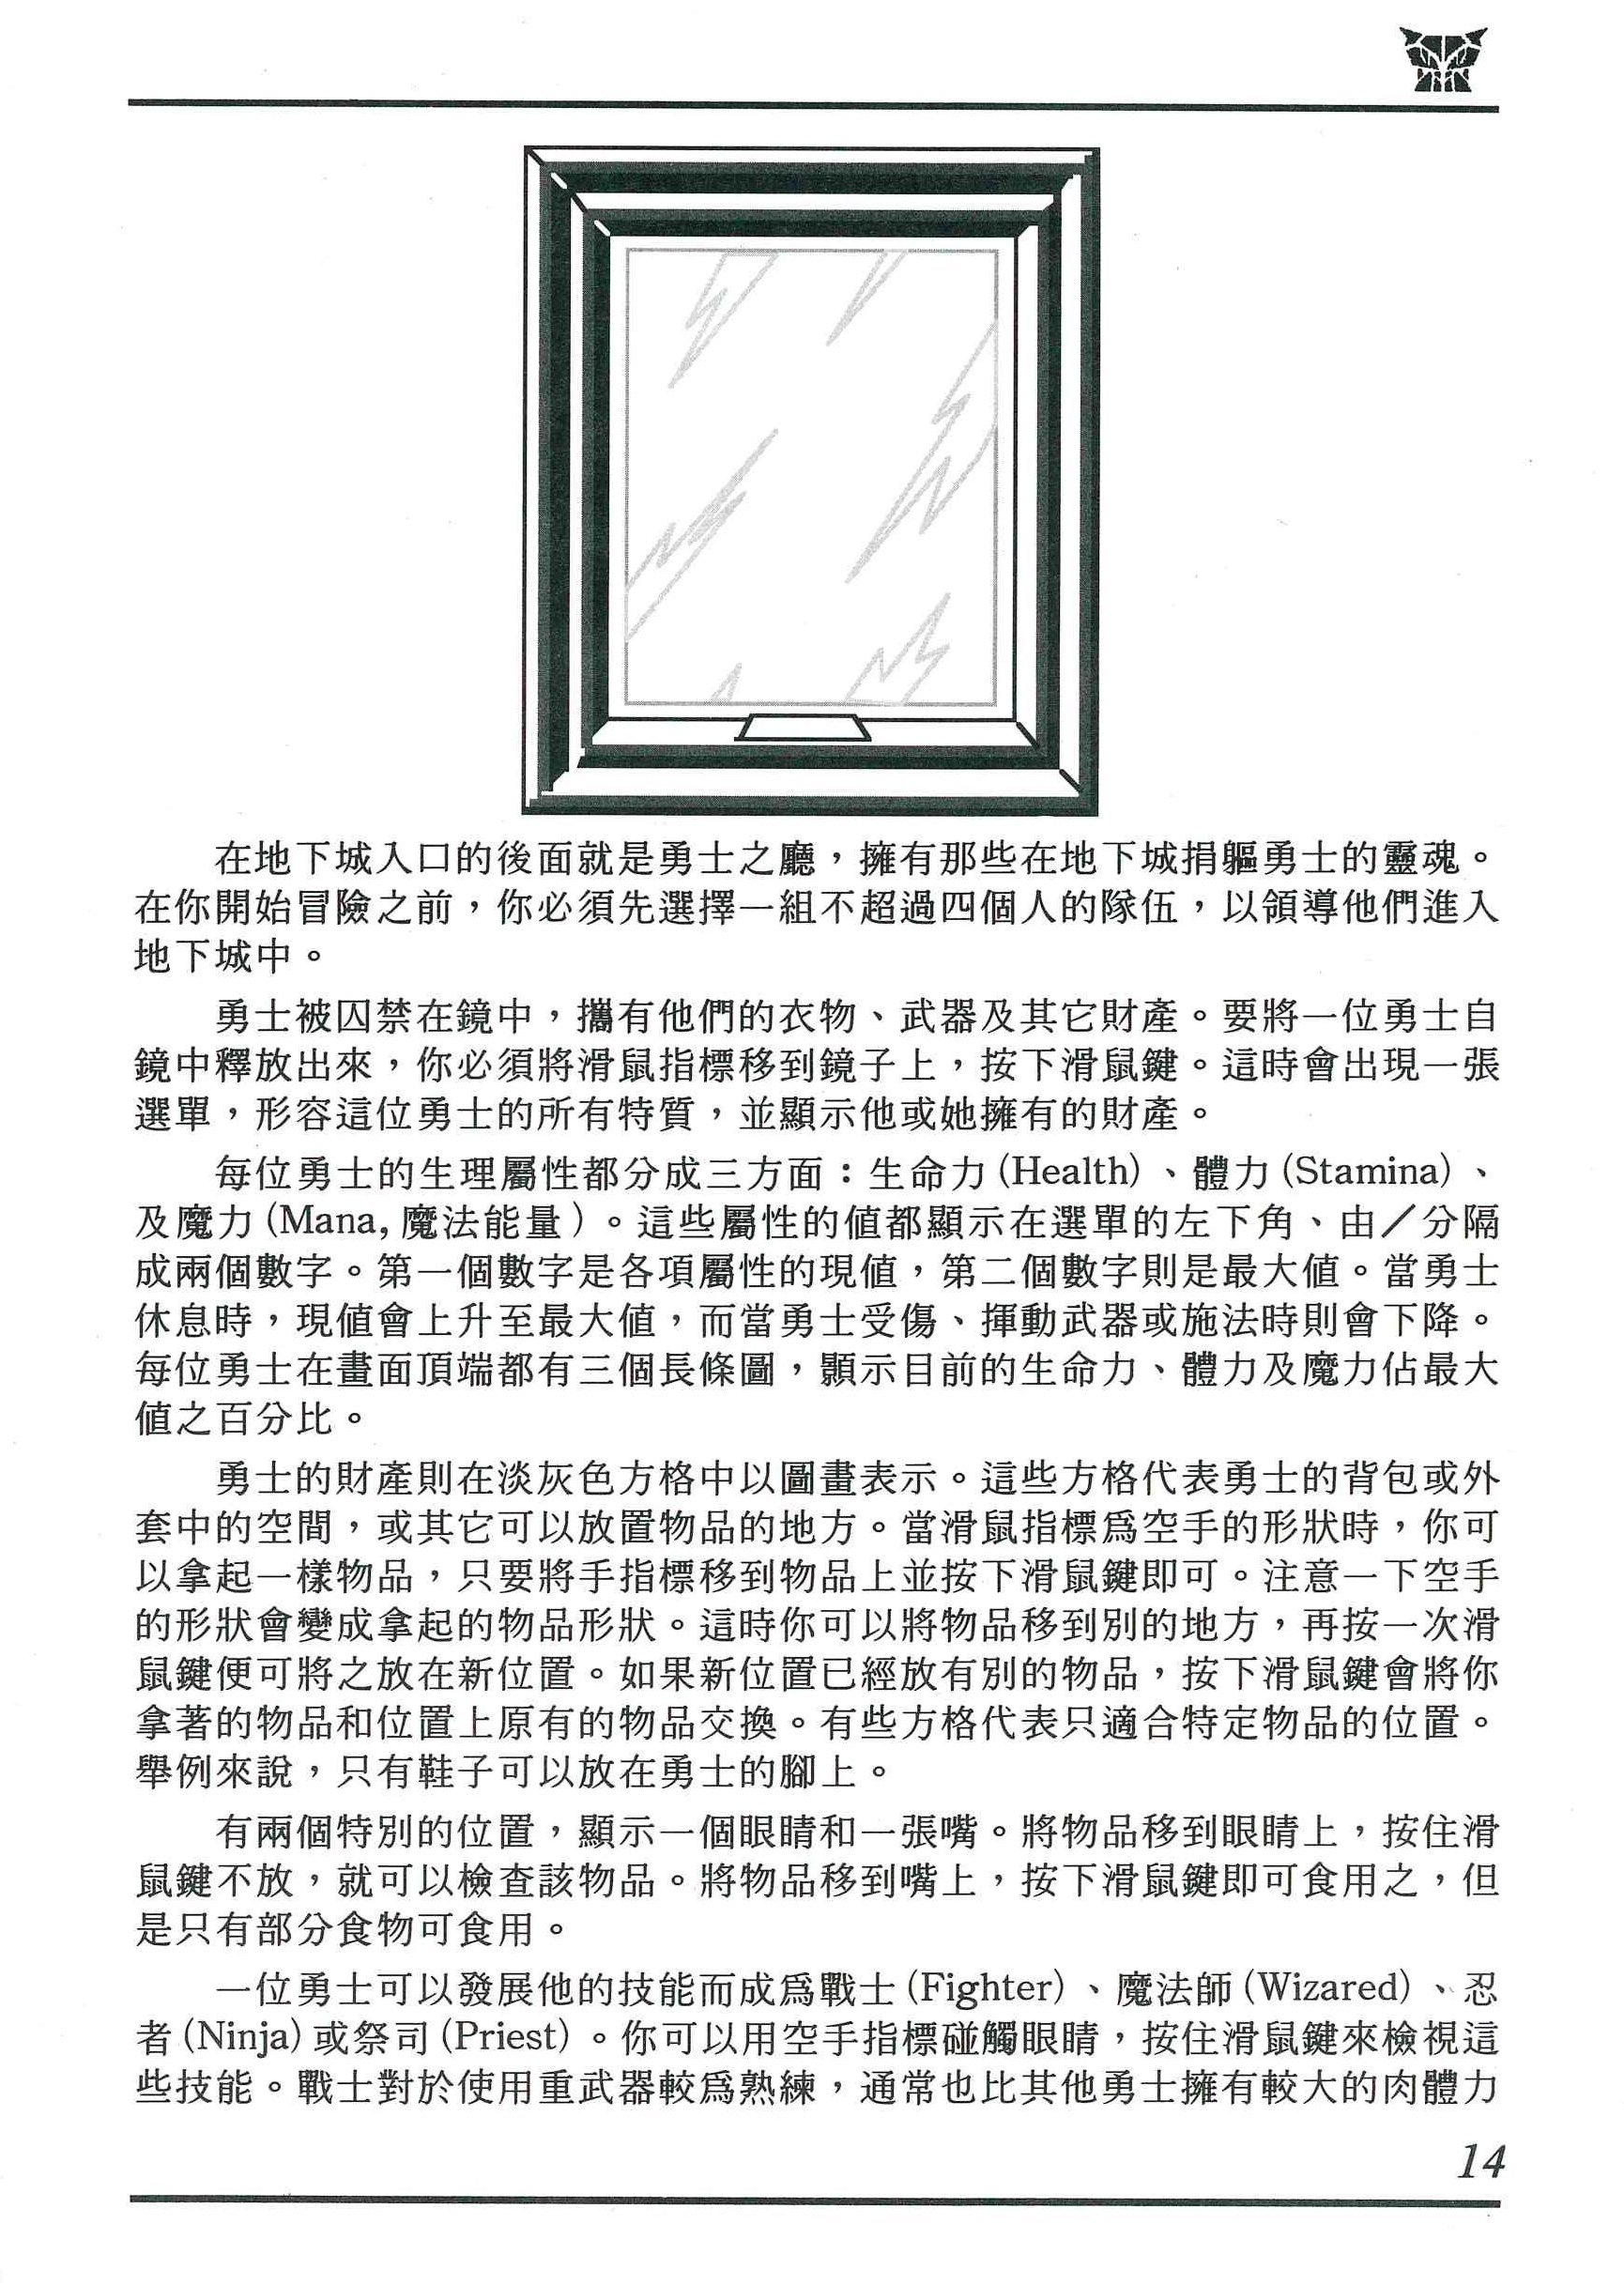 Game - Dungeon Master - CN - PC - Manual - Page 021 - Scan